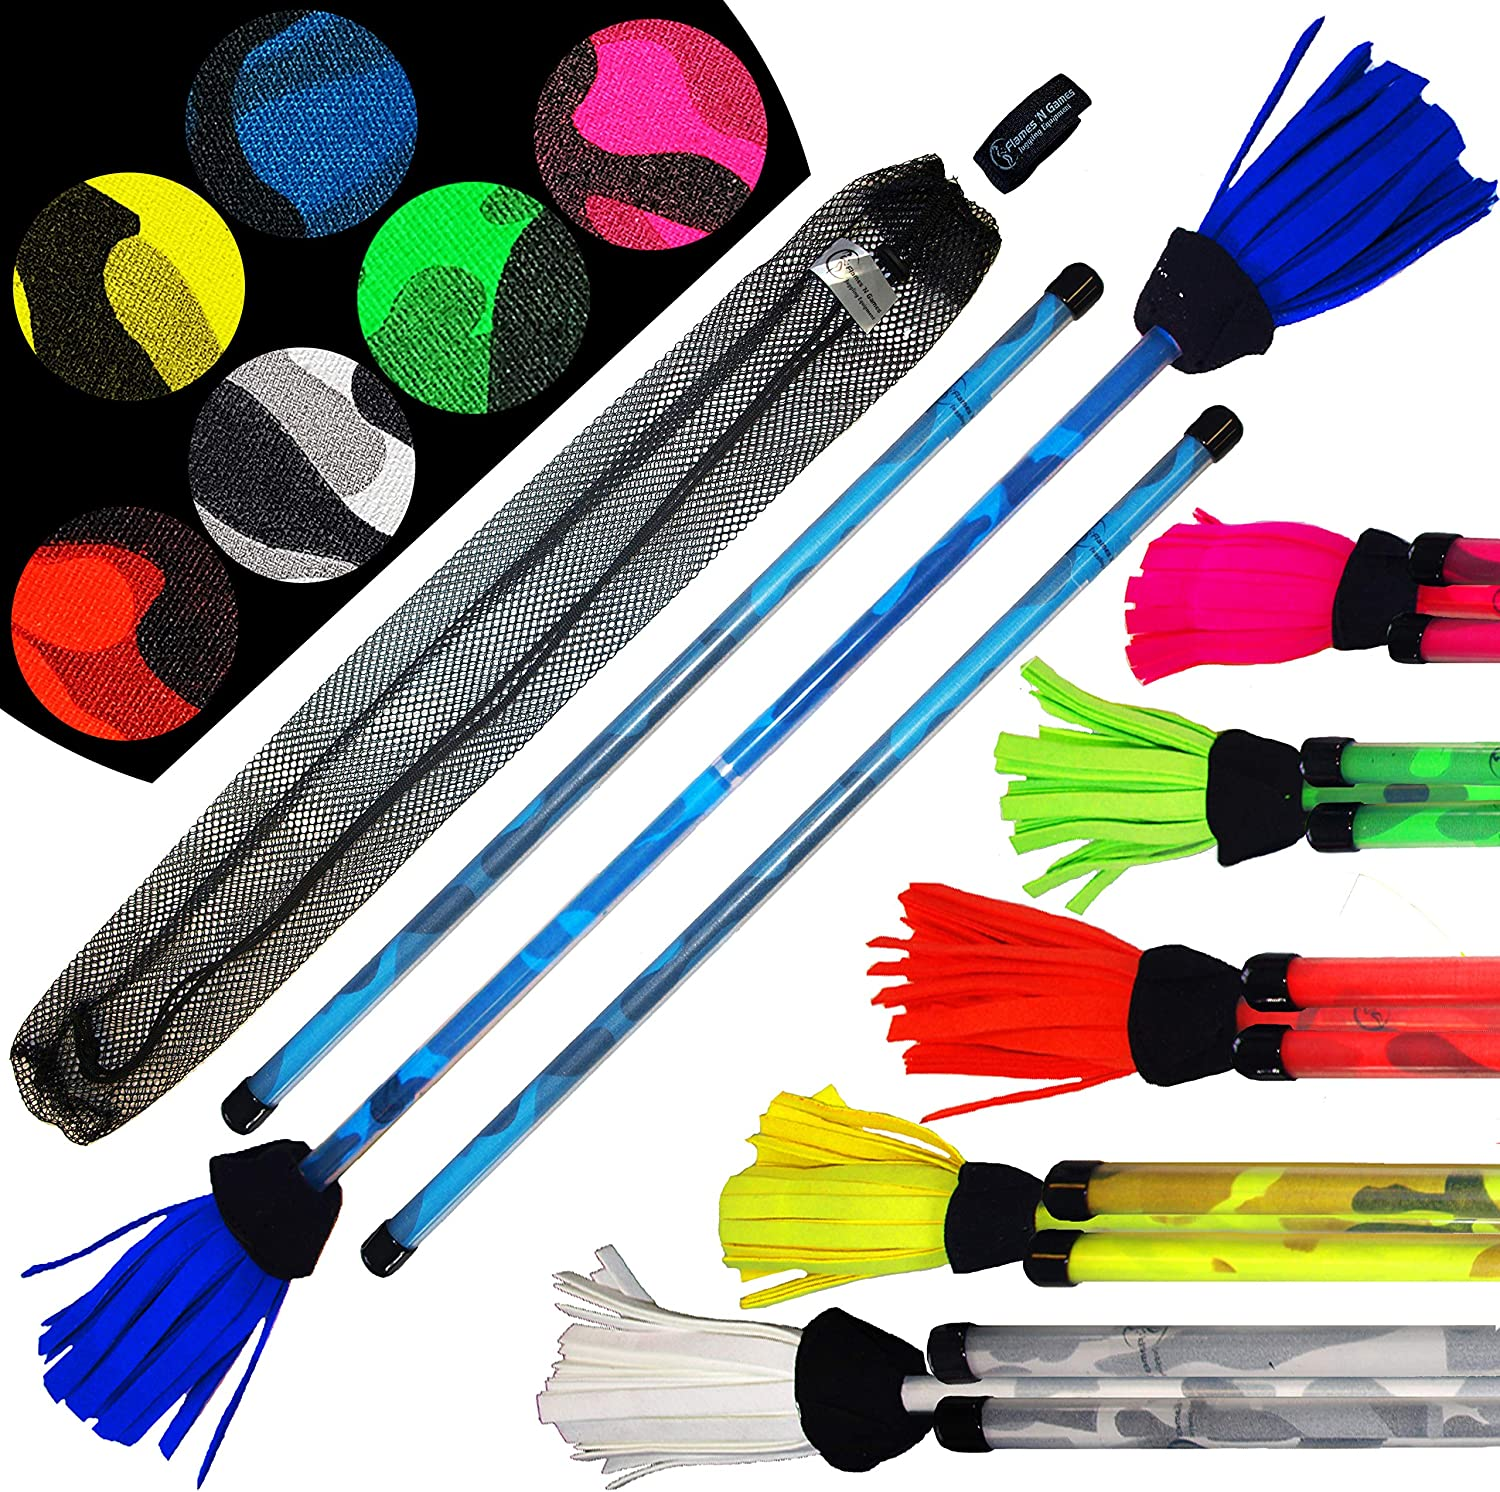 Pro Commando Sales Flower Stick Set 6 - Core with Fiber 2021 spring and summer new Colours Grip